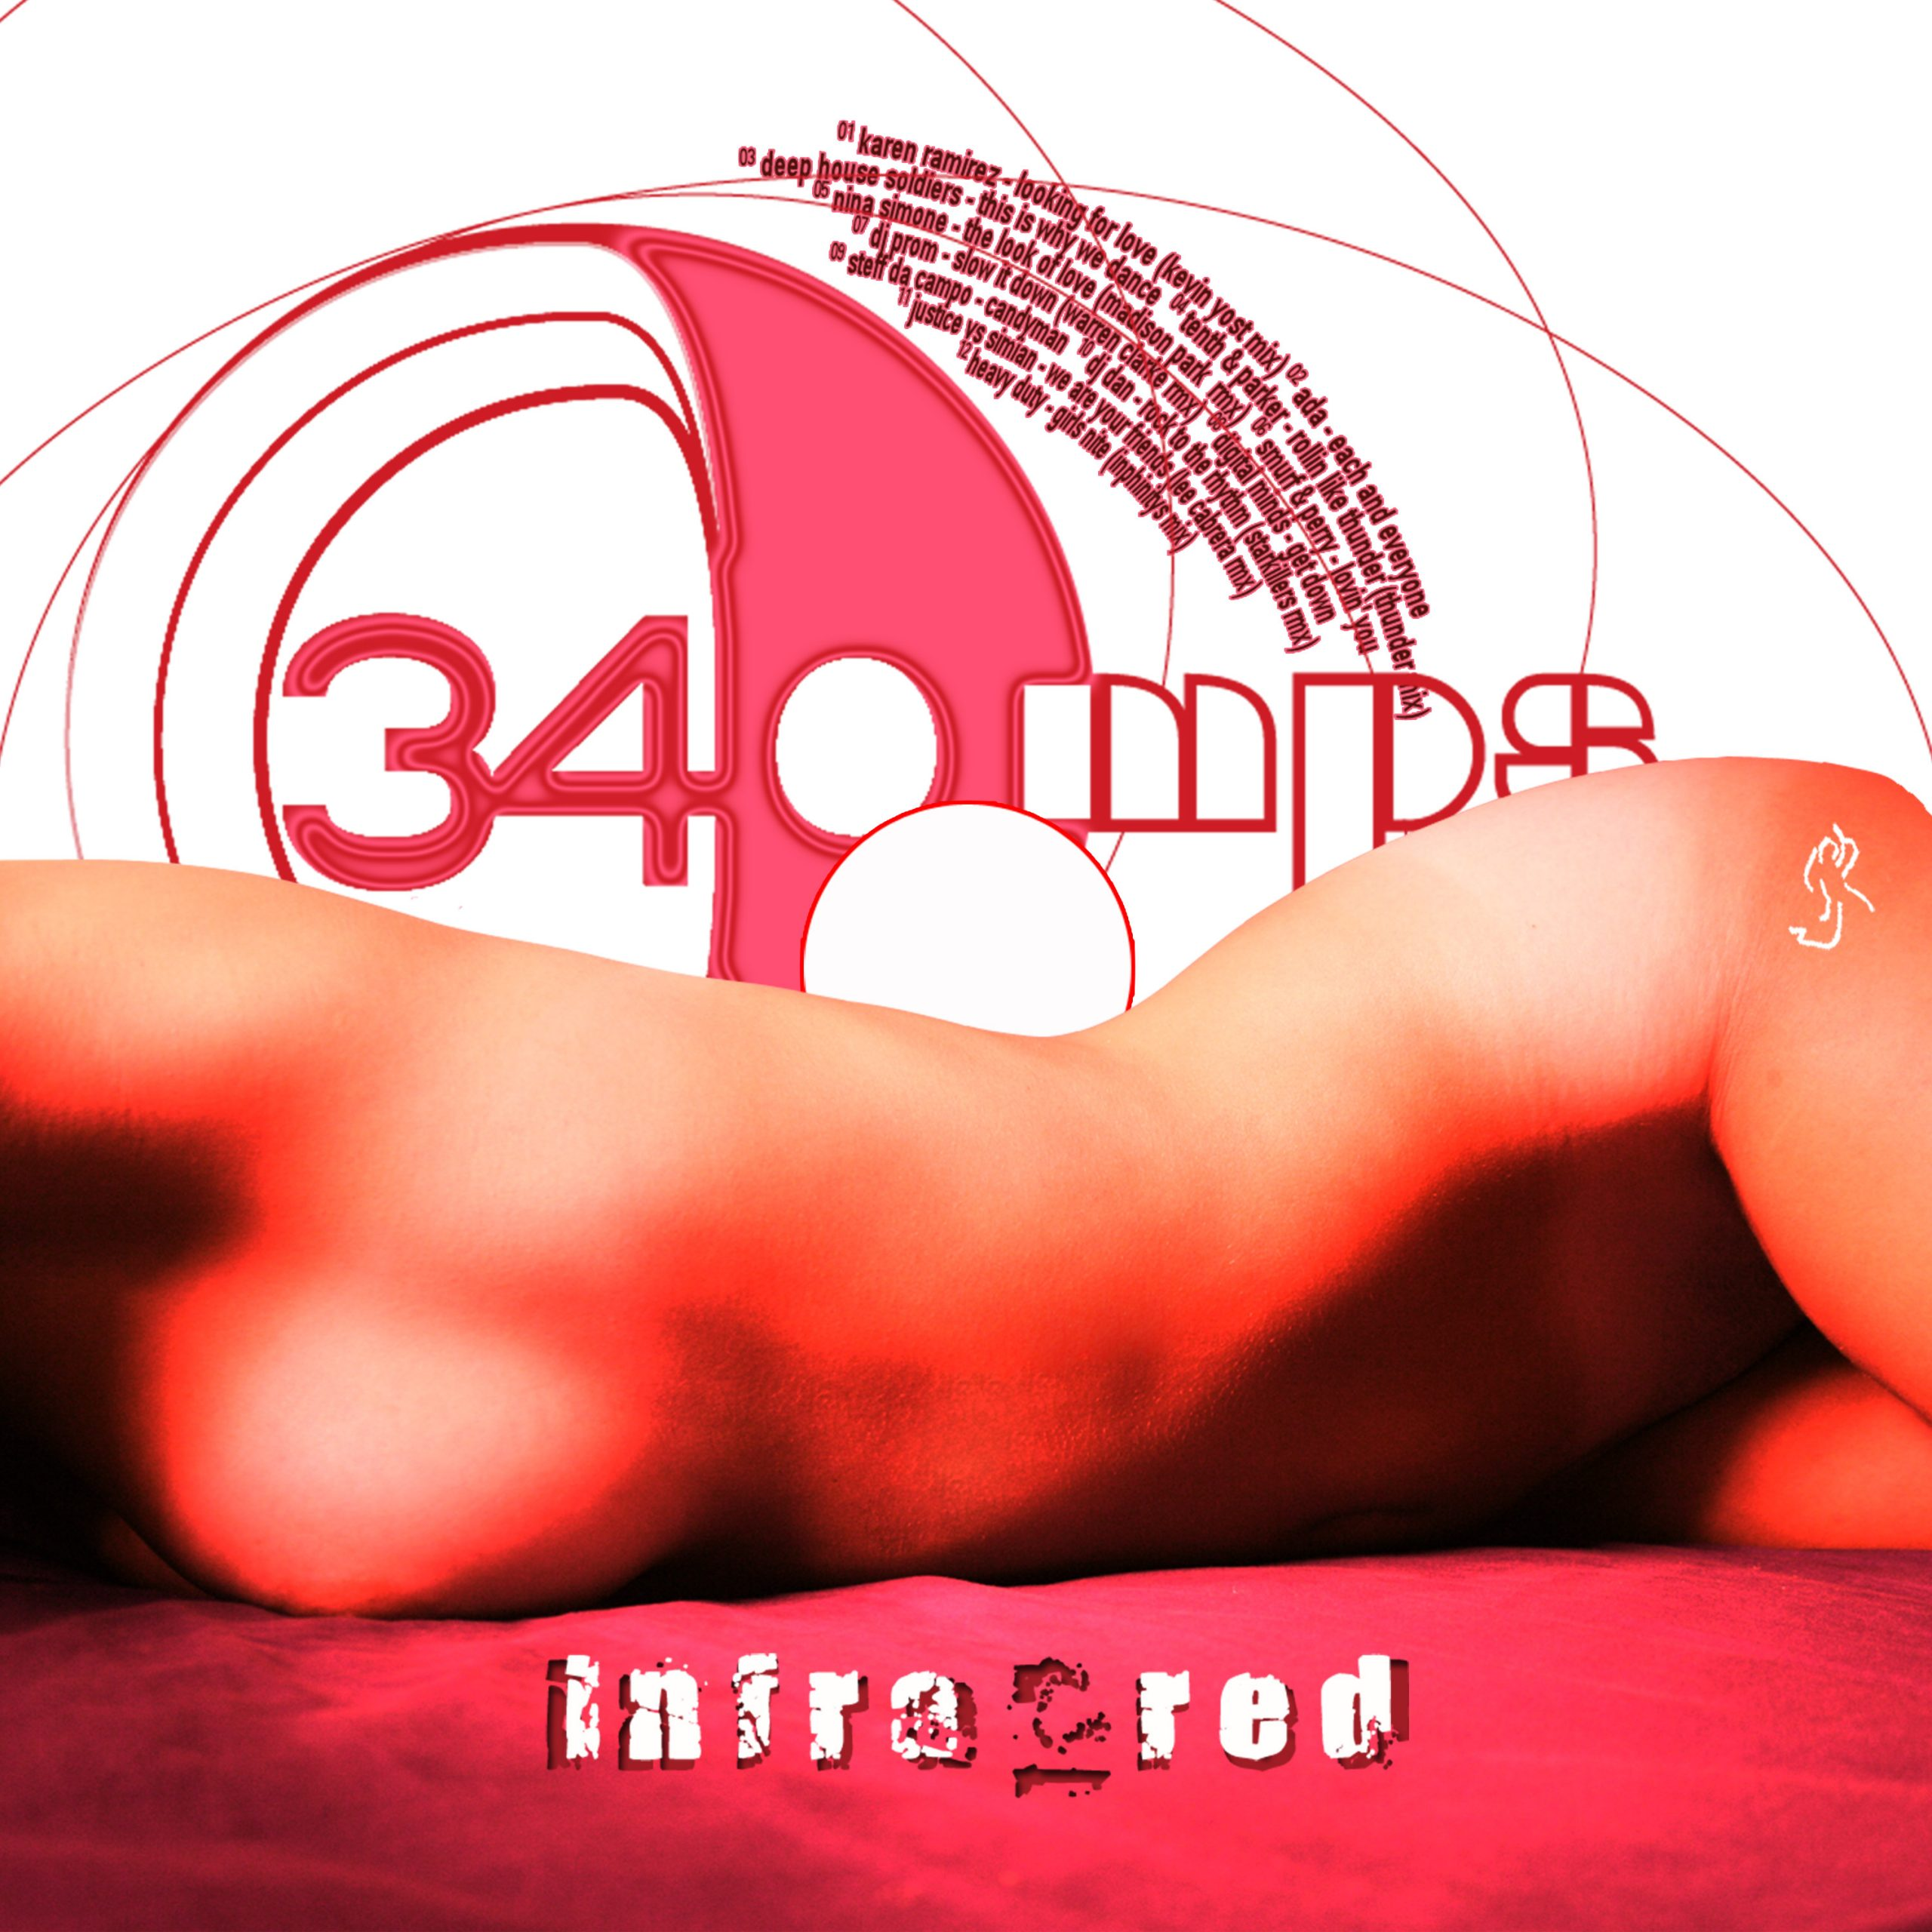 340MPS - Infra_red